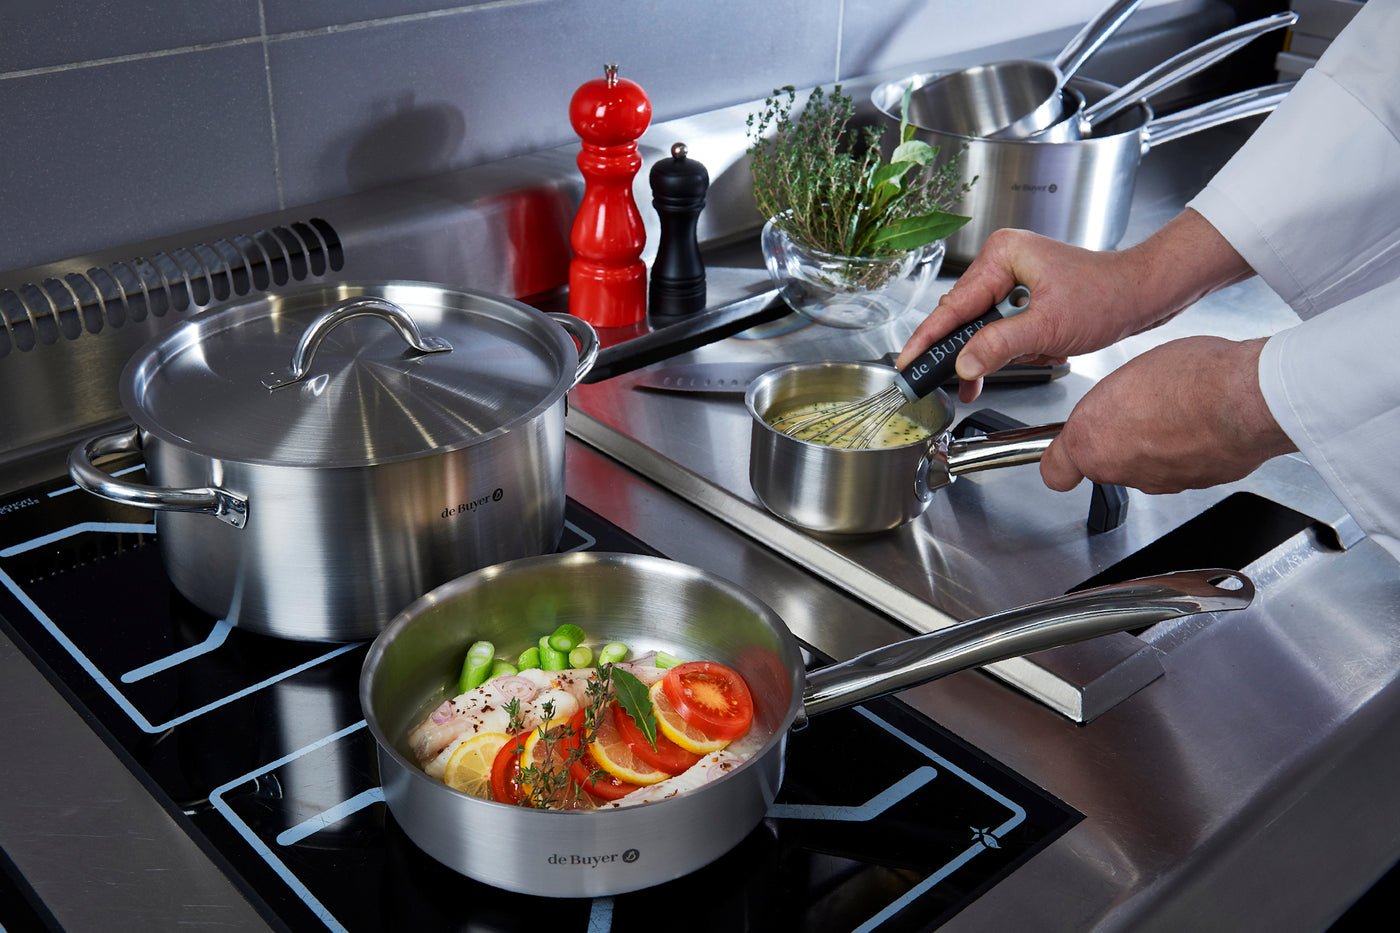 De Buyer Prim Appety Stainless Steel Saute Pan Bidfood Catering